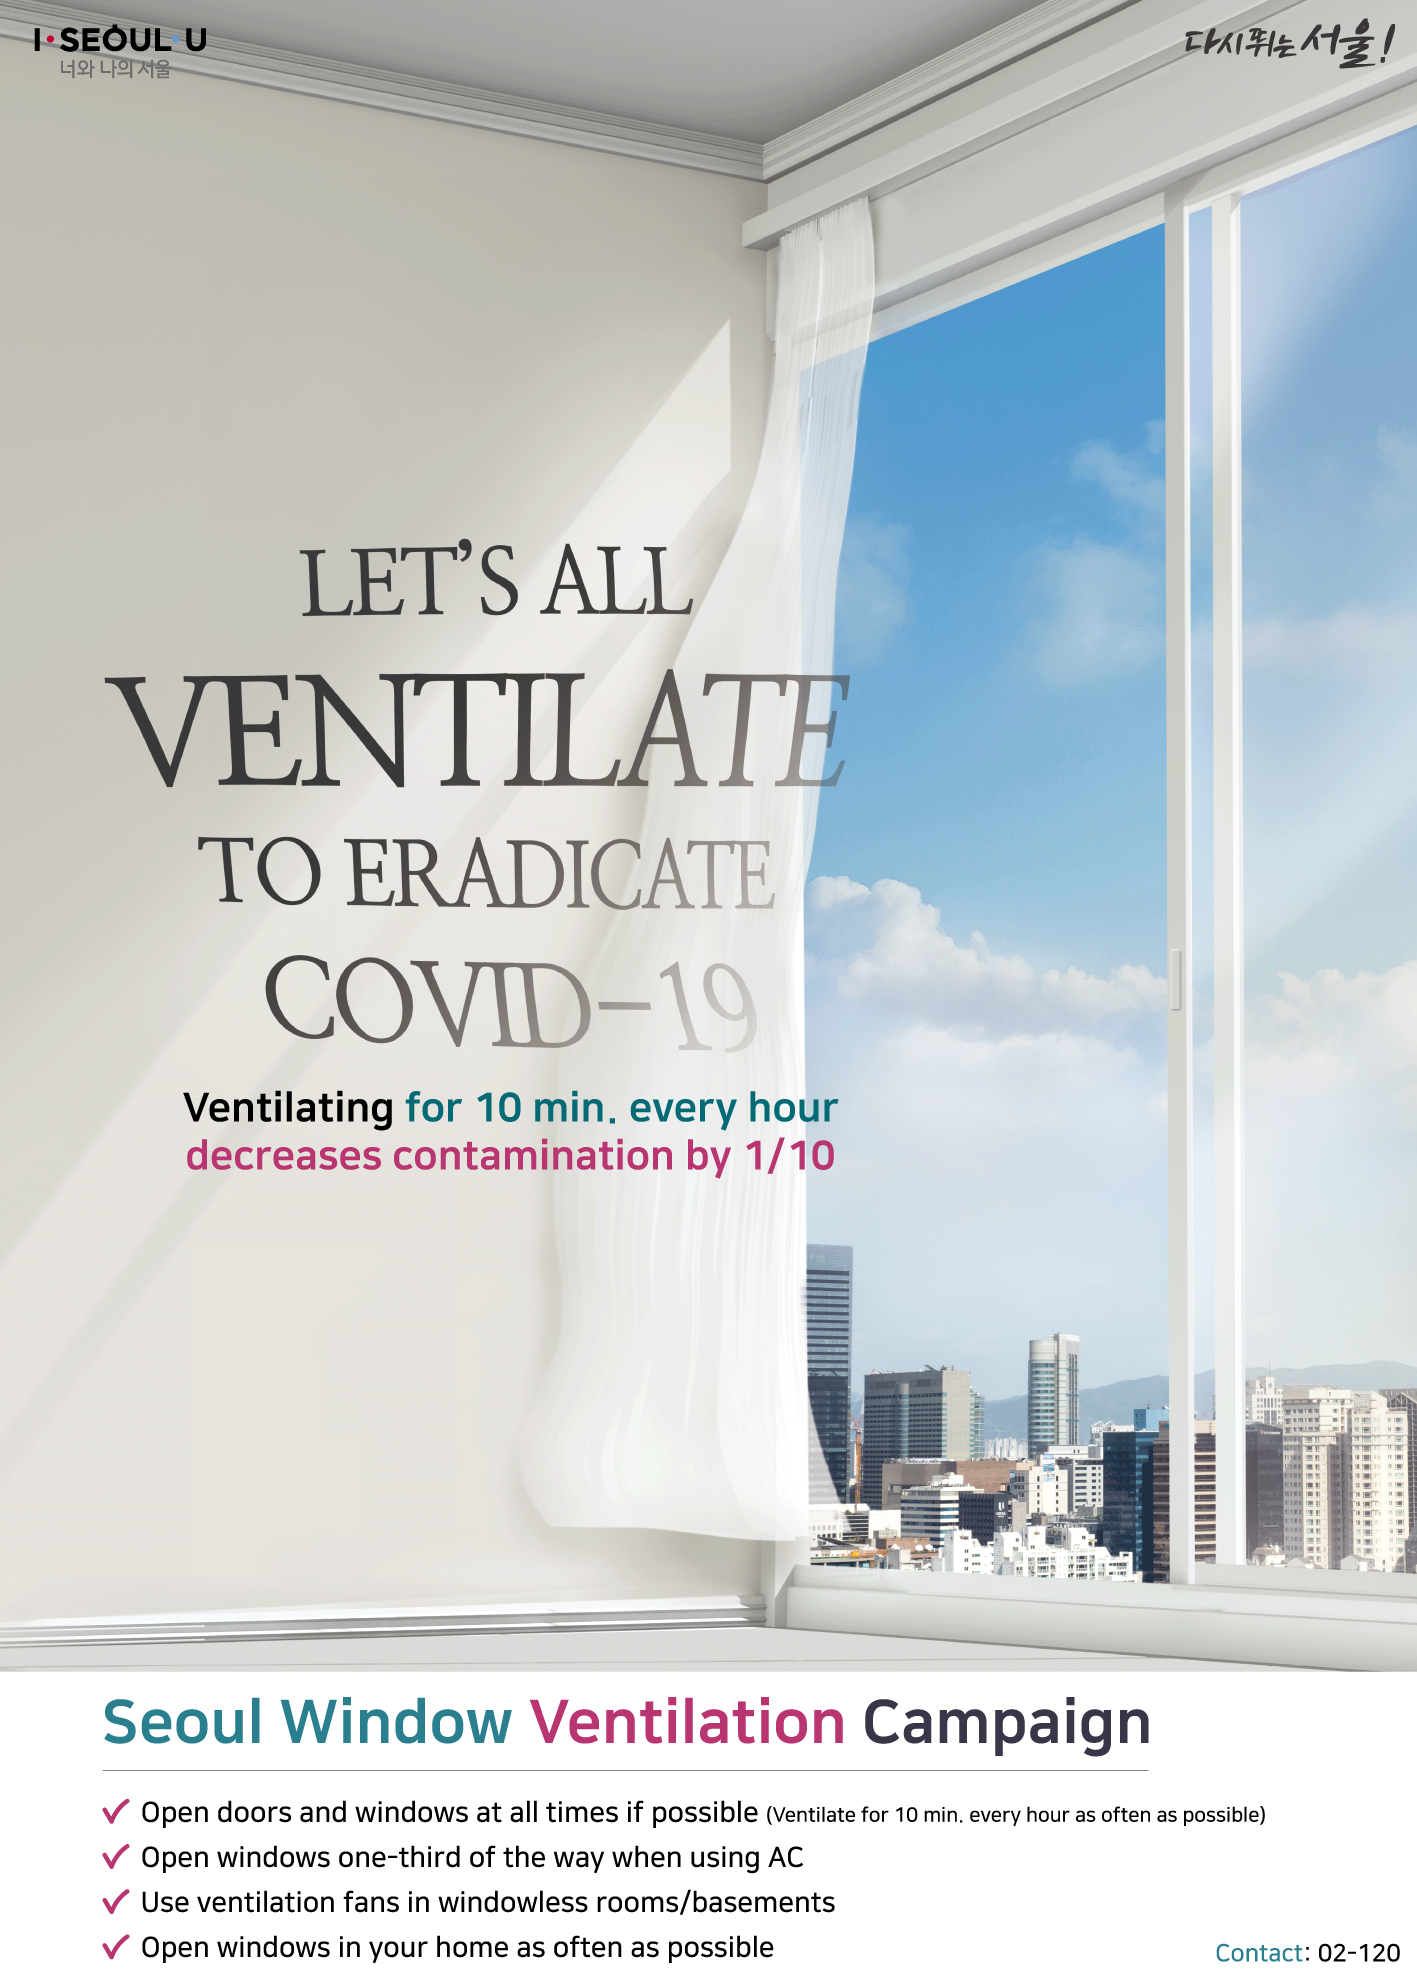 LET'S ALL VENTILATE TO ERADICATE COVID-19 Ventilating for 10 min. every hour decreases contamination by 1/10 Seoul Window Ventilation Campaign Open doors and windows at all times if possible Ventilate for 10 min. every hour as often as possible Open windows one-third of the way when using AC Use ventilation fans in windowless rooms/basements Open windows in your home as often as possible Contact: 02-120